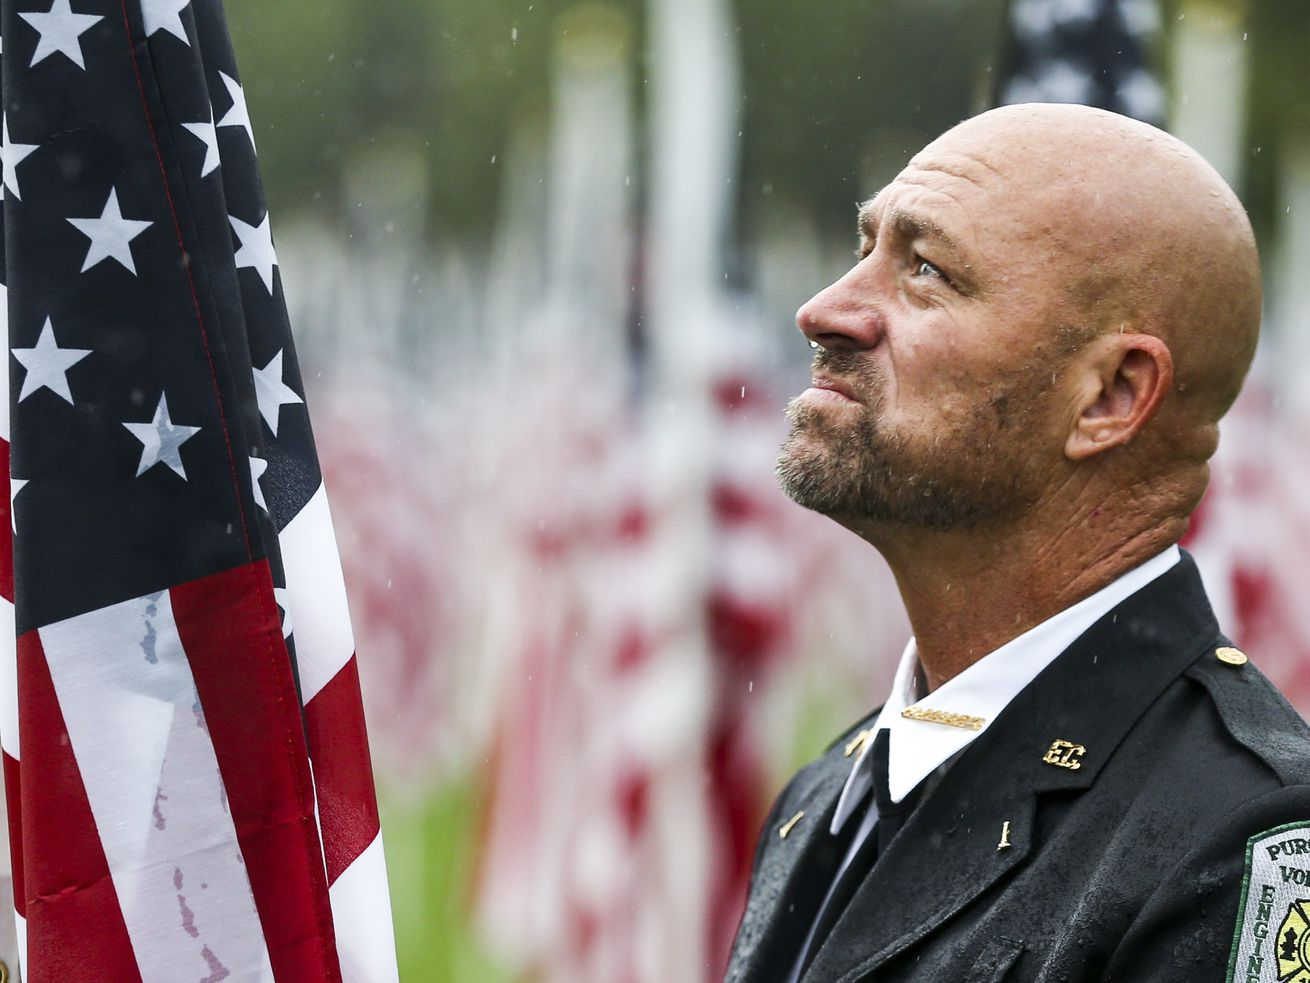 Phil Larson, a retired firefighter with the Round Hill Volunteer Fire Department in Washington, D.C., braves the rain at the 18th annual Healing Field in Sandy on Wednesday, Sept. 11, 2019, as he pays his respects to the men and women who lost their lives during the 9/11 attacks. Larson, a Sandy native, was one of the rescuers that responded to the attack on the Pentagon.